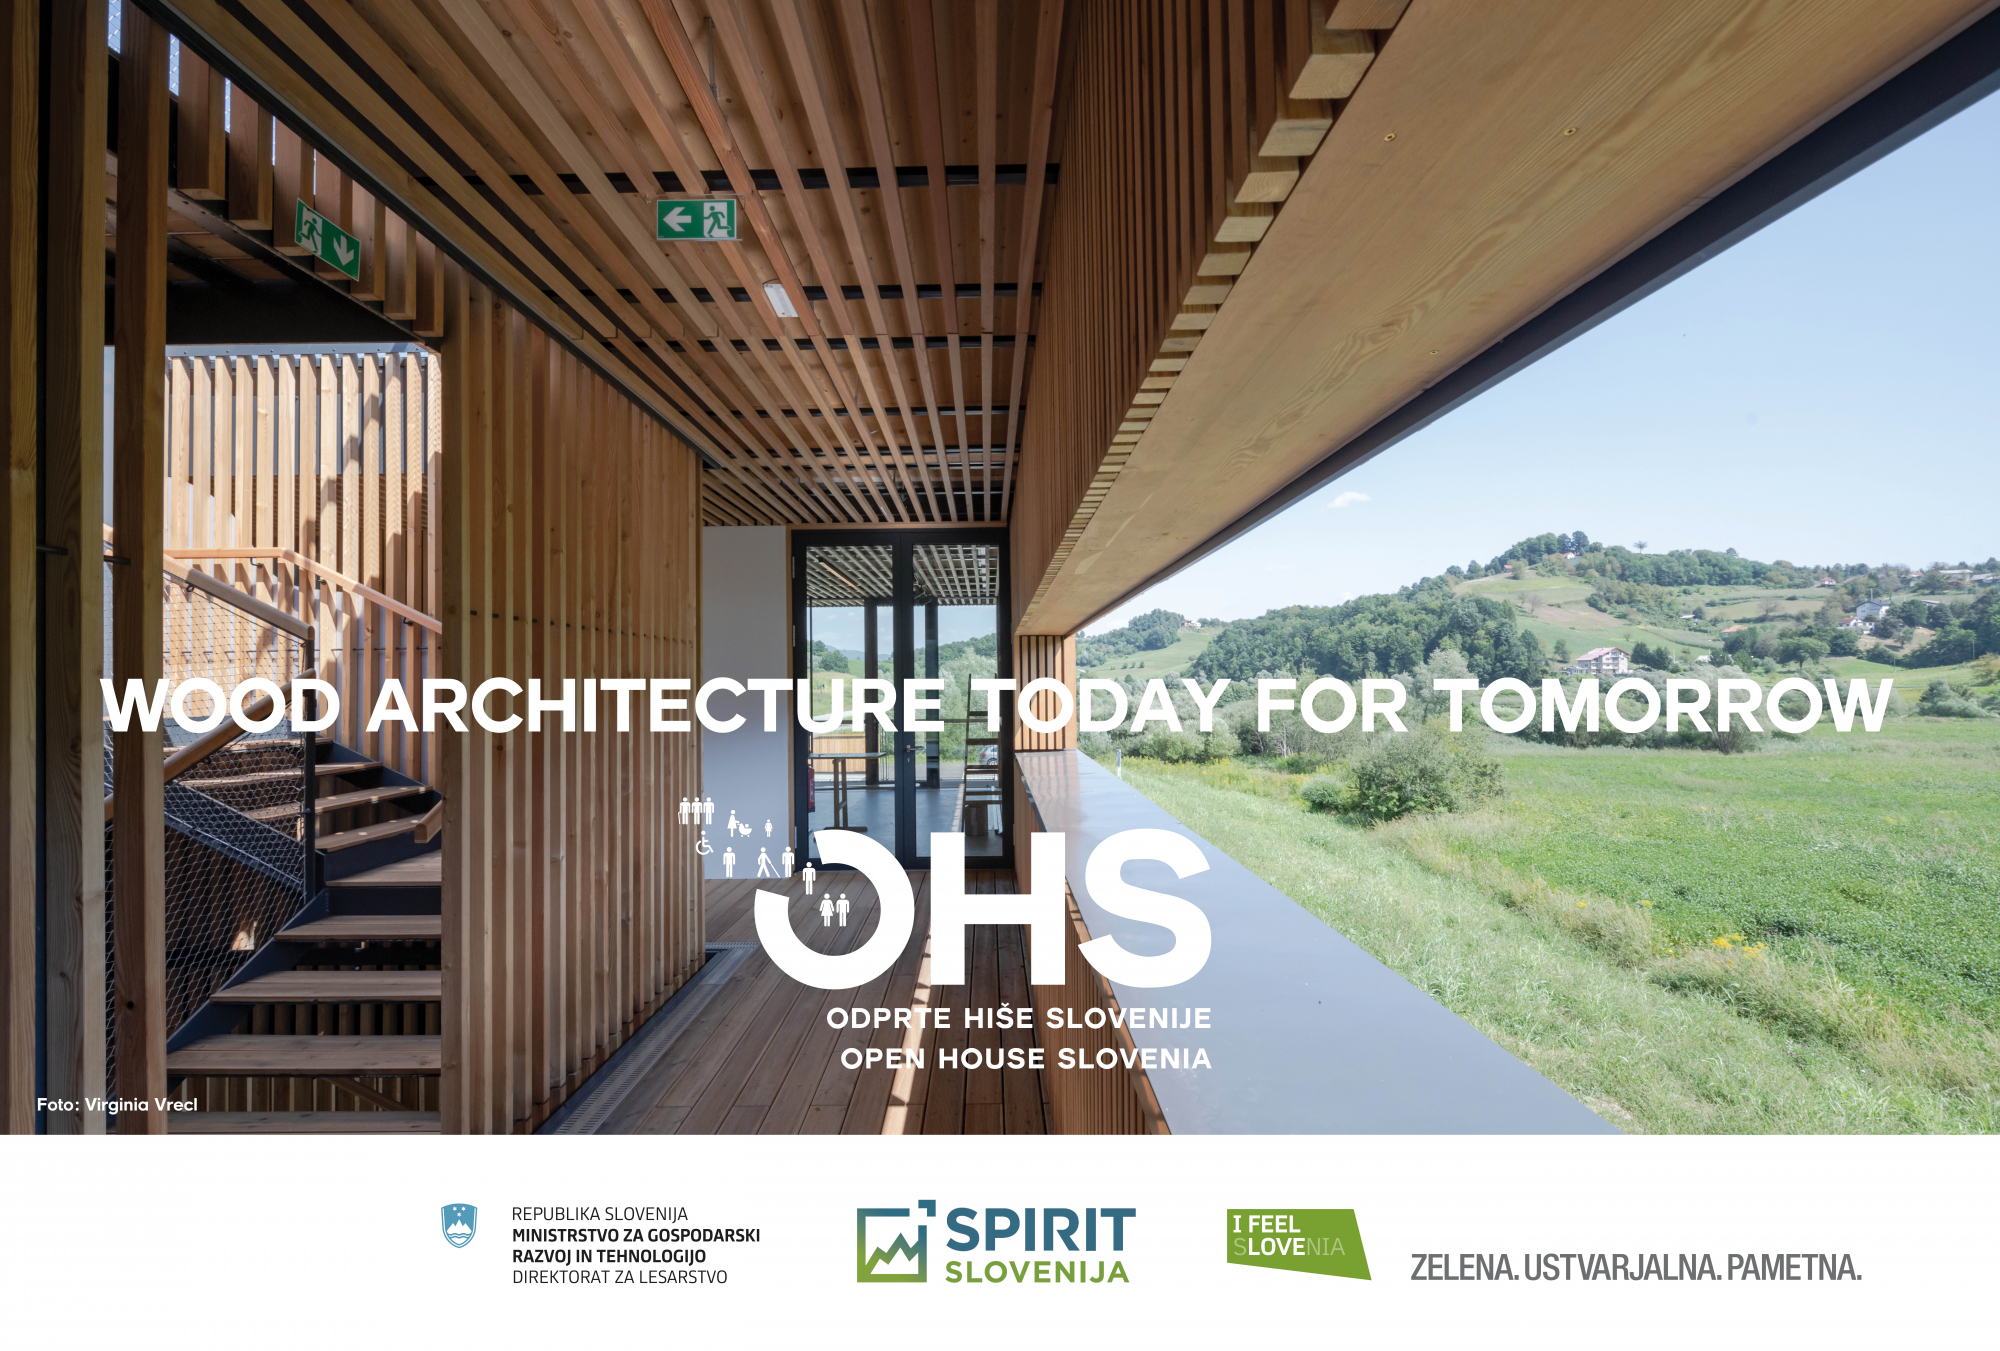 WOOD ARCHITECTURE TODAY FOR TOMORROW